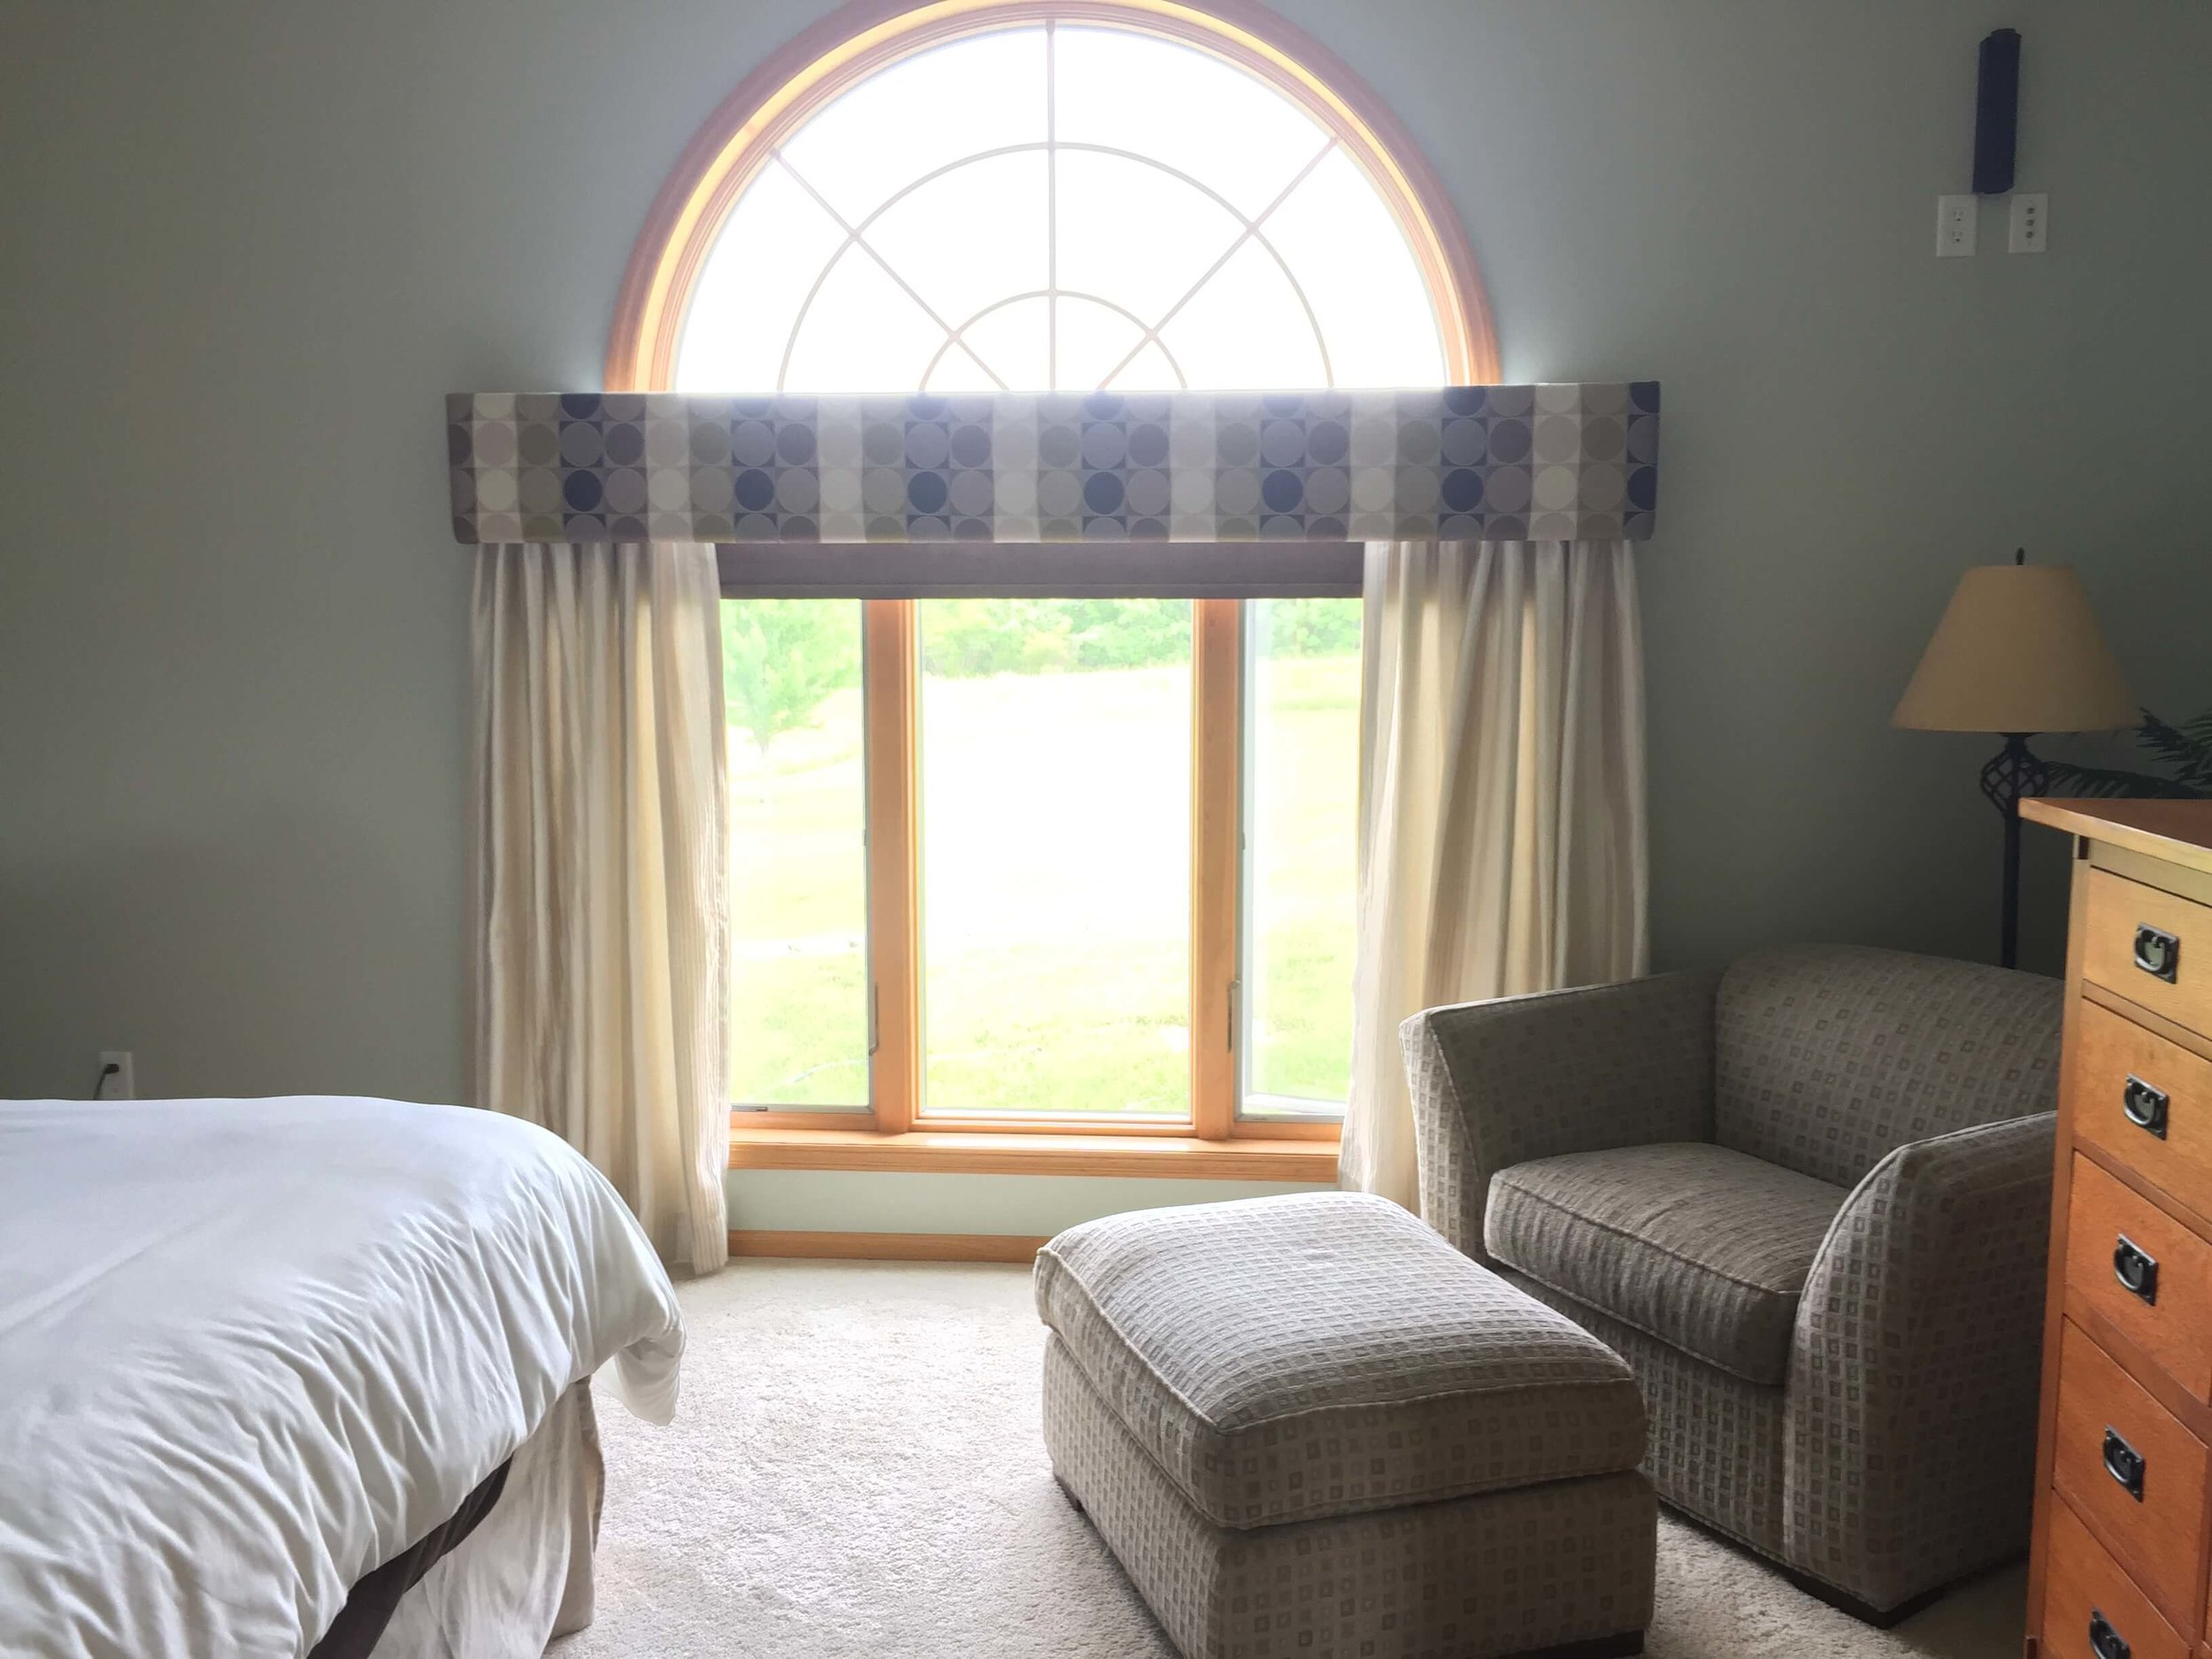 custom-window-treatments-verona-wisconsin-8.JPG